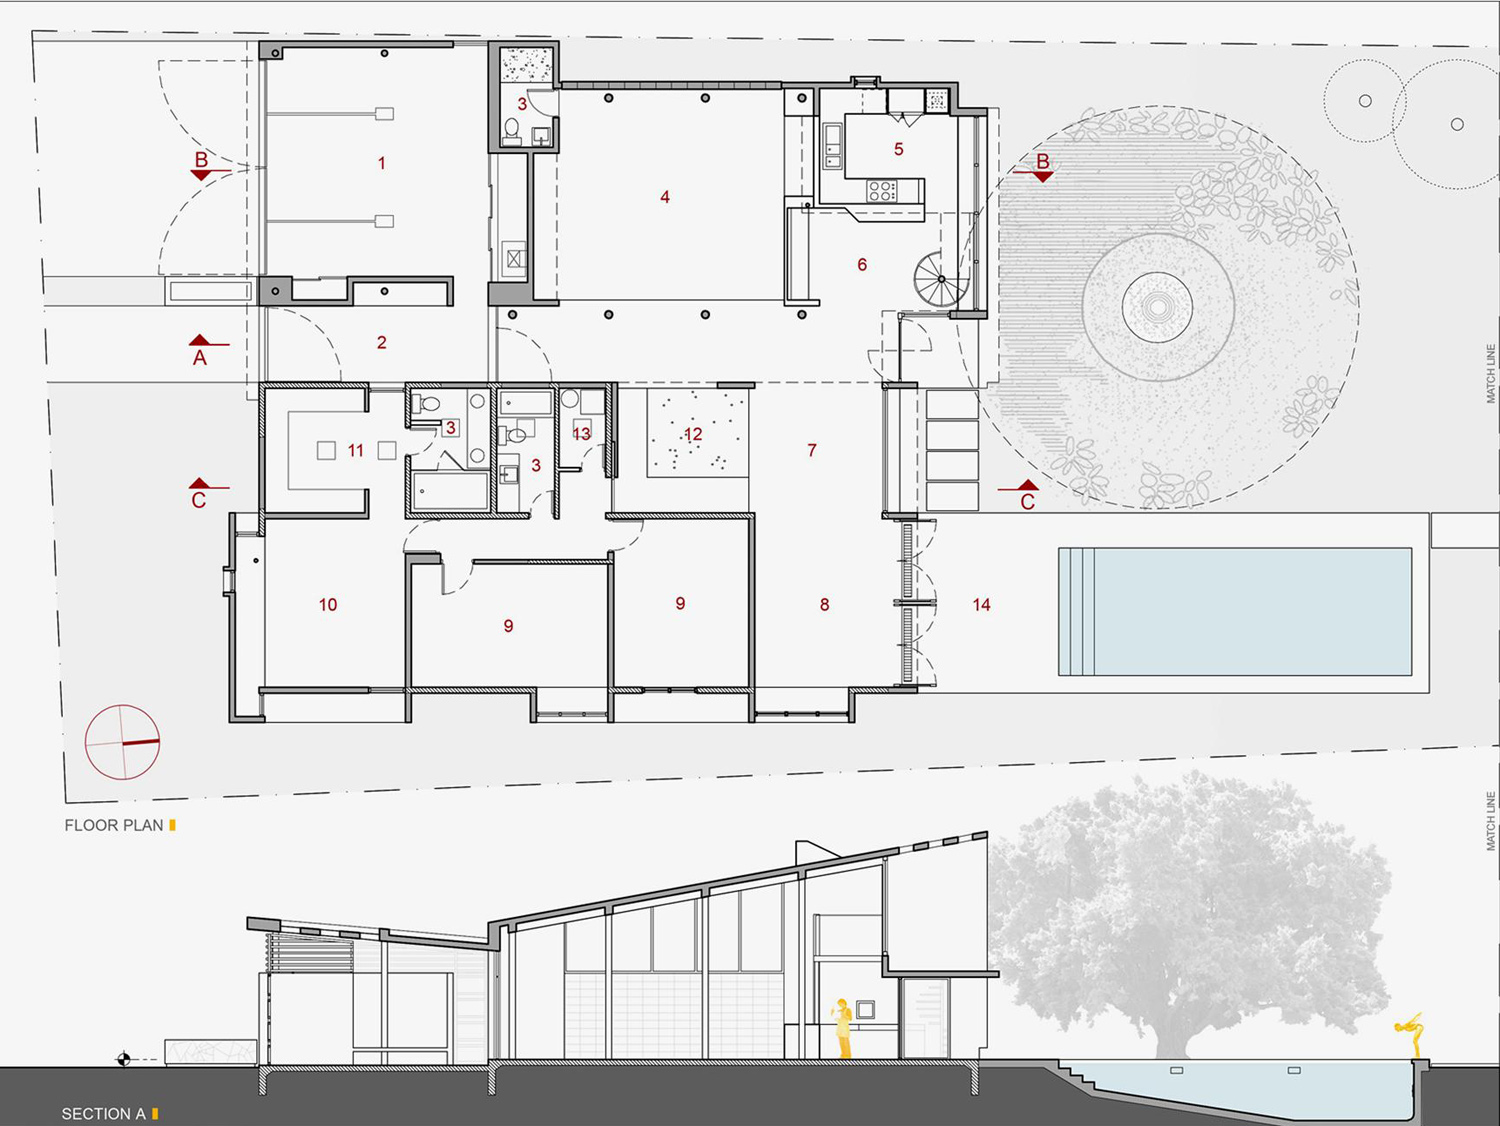 Architecture Photography 98275009 Floor Plan Section 11431